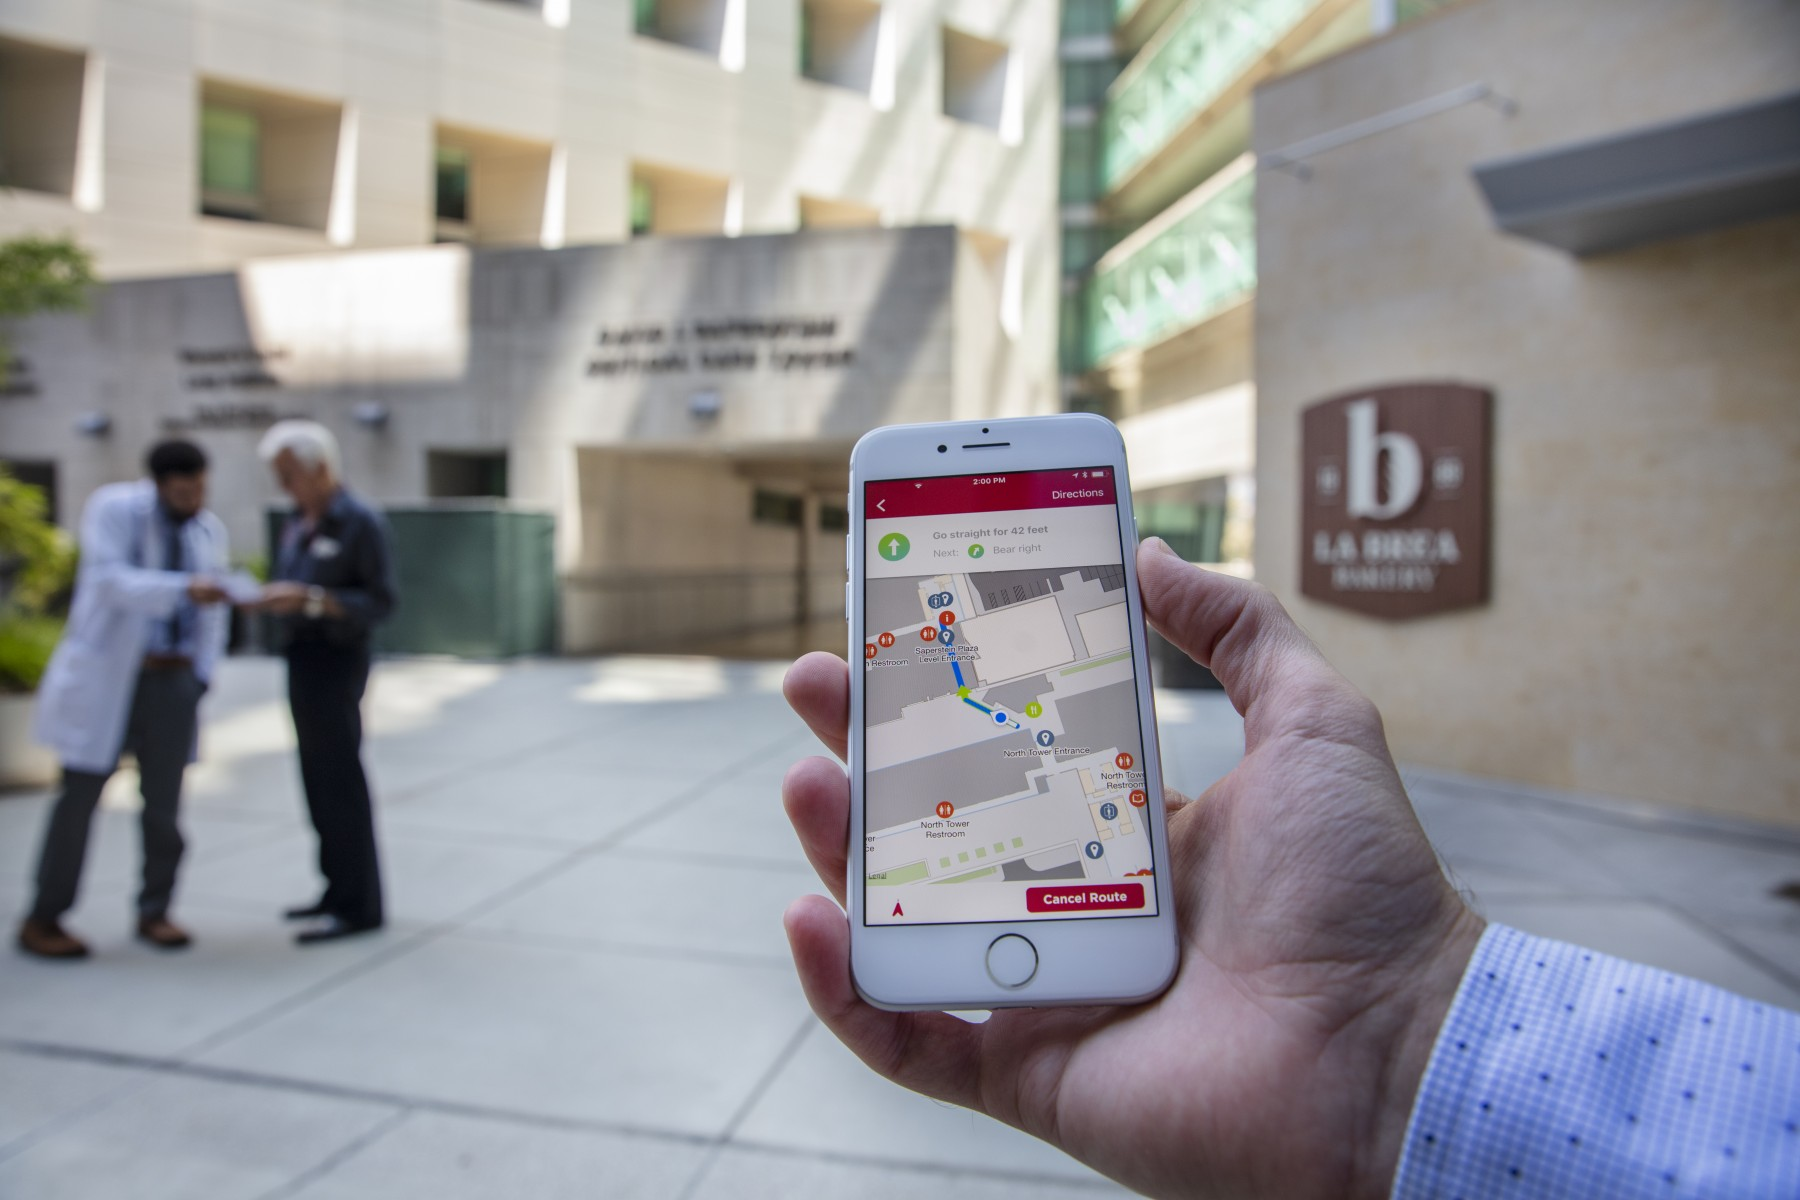 Lost at Cedars-Sinai? New Navigation Tool Available for